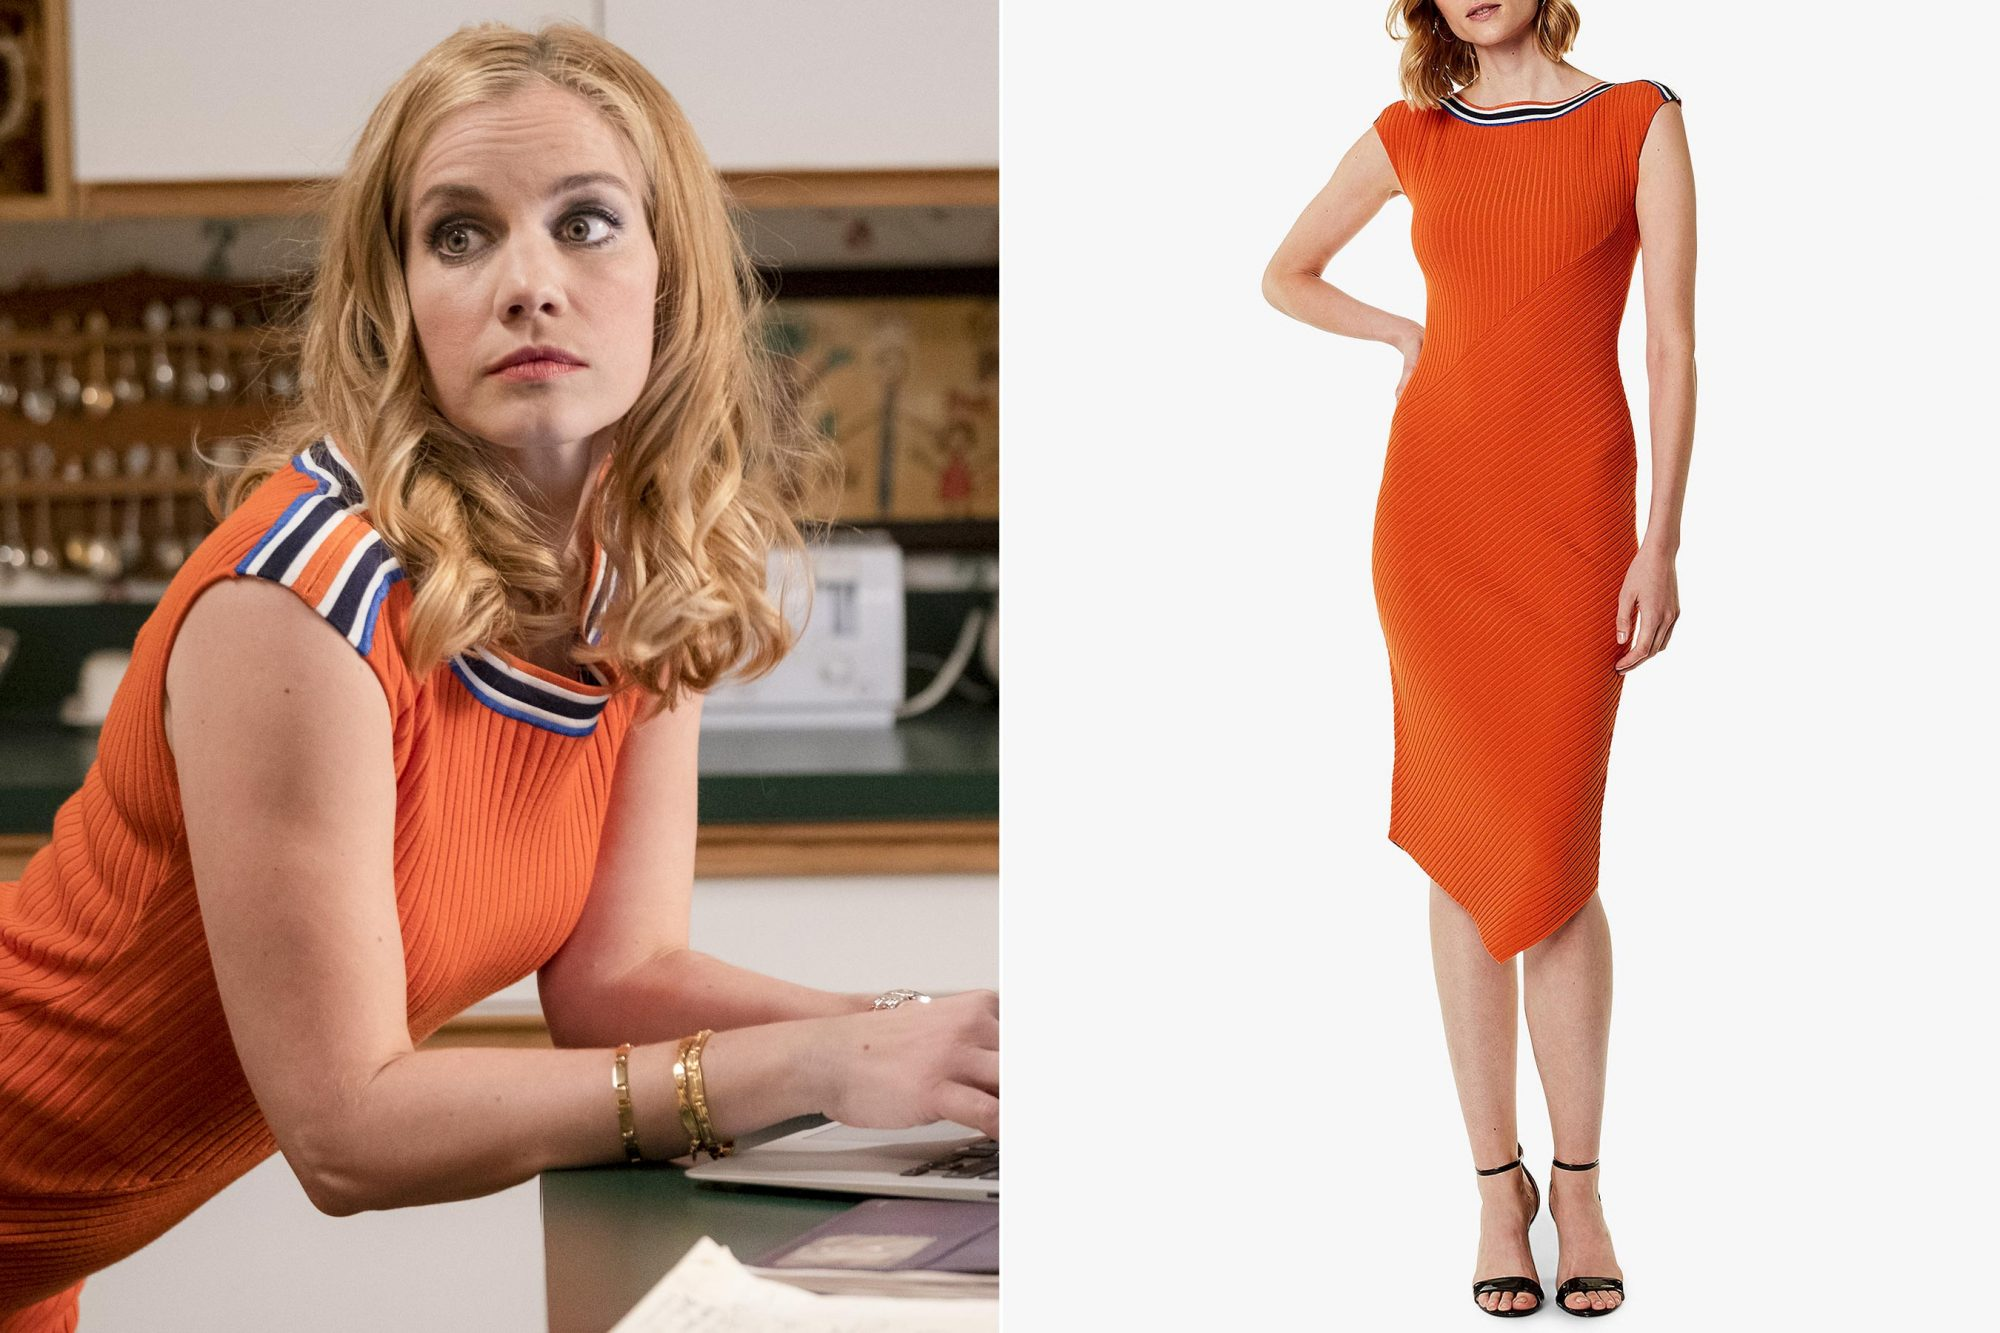 VEEP Season 7, episode 6 (debut 5/5/19): Anna Chlumsky. photo: Colleen Hayes/HBO KAREN MILLEN Asymmetric Rib-Knit Midi Dress https://www.bloomingdales.com/shop/product/karen-millen-asymmetric-rib-knit-midi-dress?ID=3037355 CR: Bloomingdales